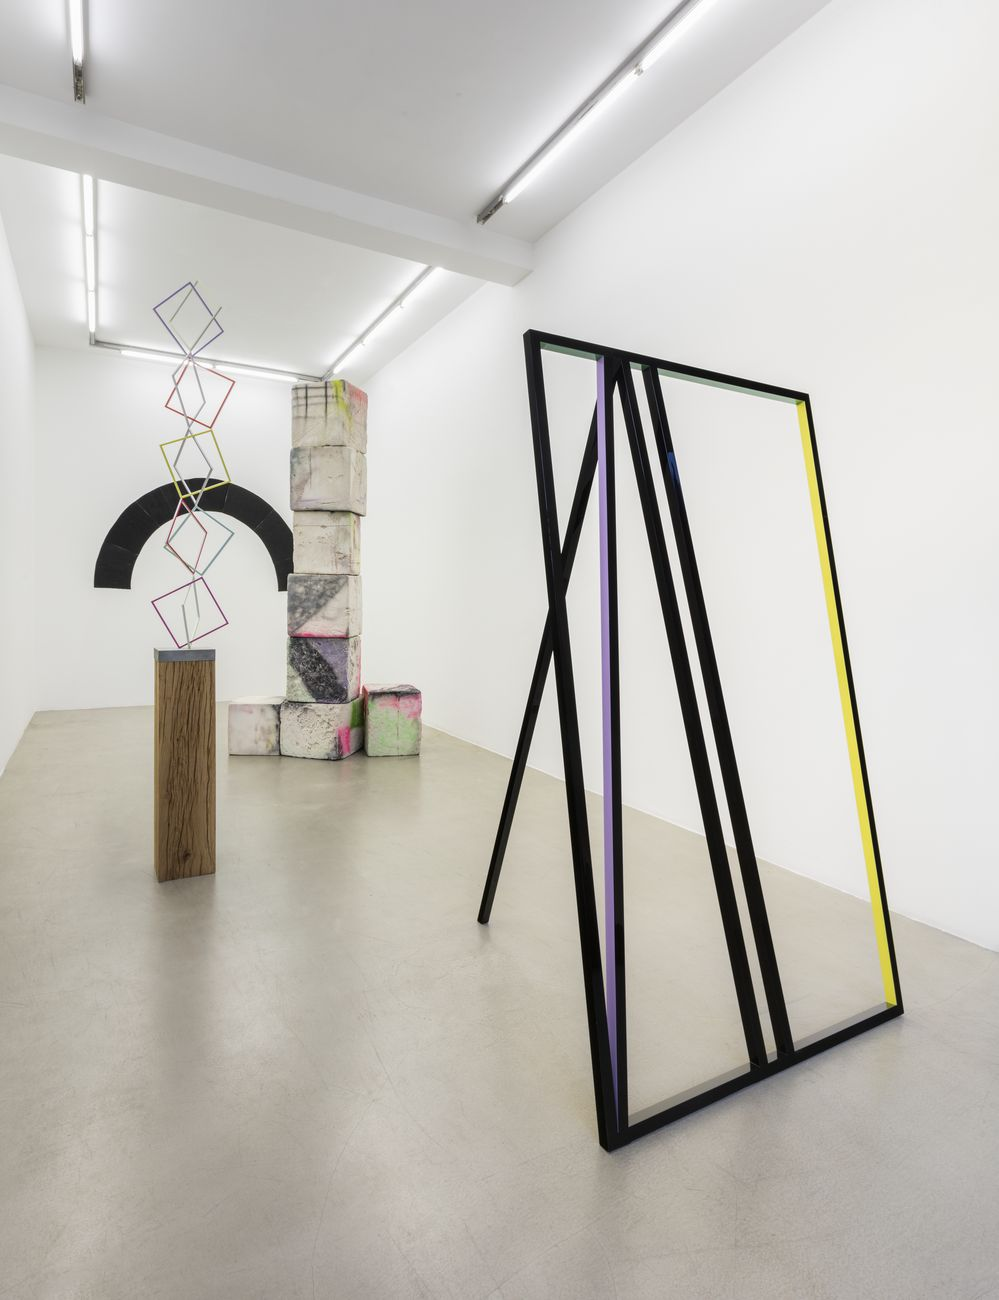 Eva Rothschild. Exhibition view at kaufmann repetto, Milano 2017. Courtesy of the artist and kaufmann repetto, Milano New York. Photo Andrea Rossetti